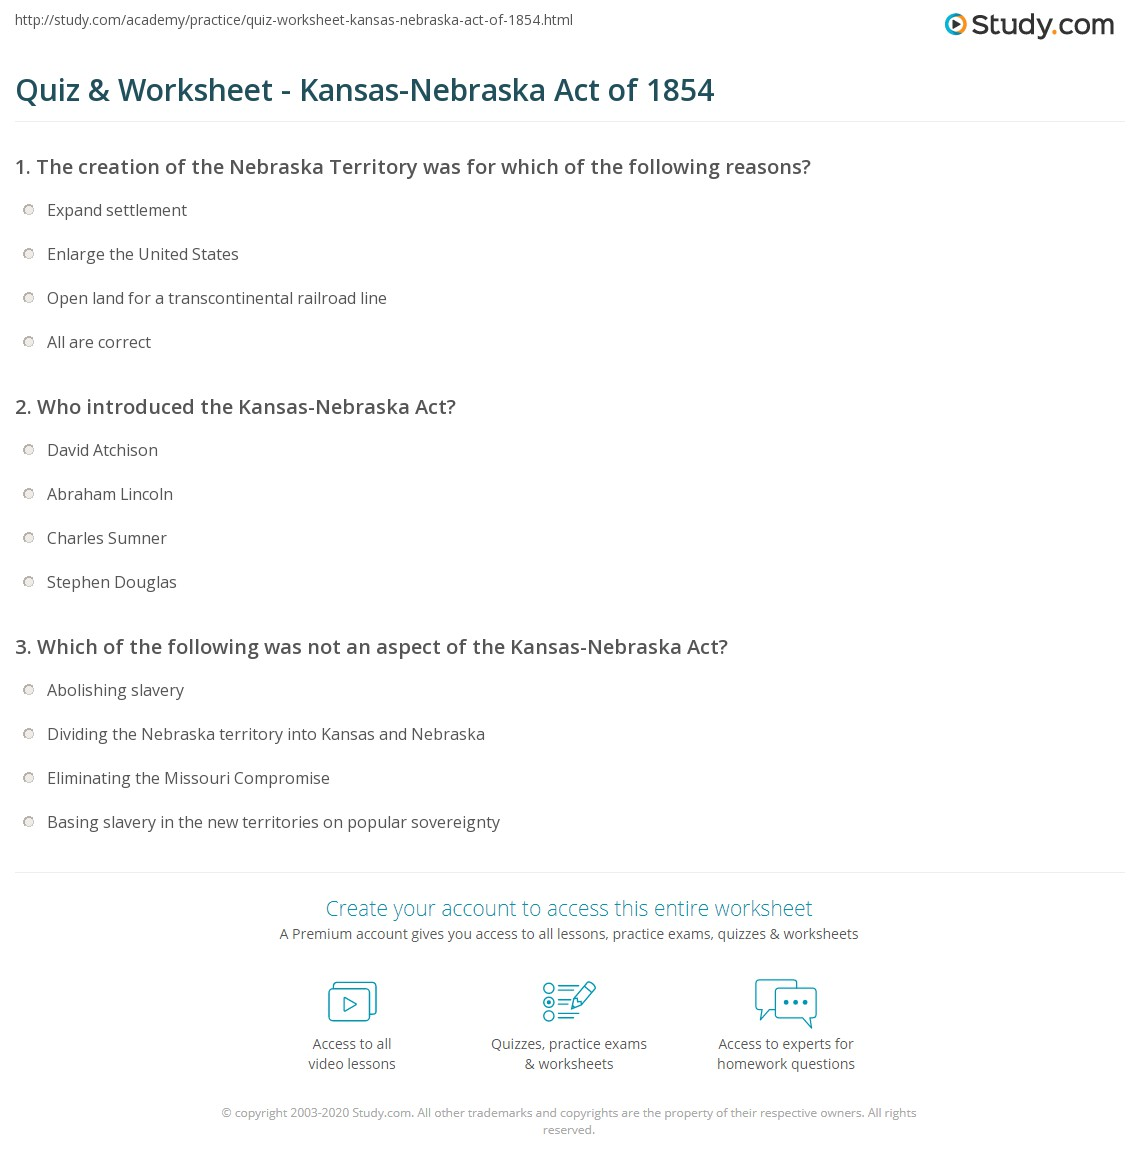 worksheet The Kansas Nebraska Act Of 1854 Worksheet Answers quiz worksheet kansas nebraska act of 1854 study com print summary definition significance worksheet